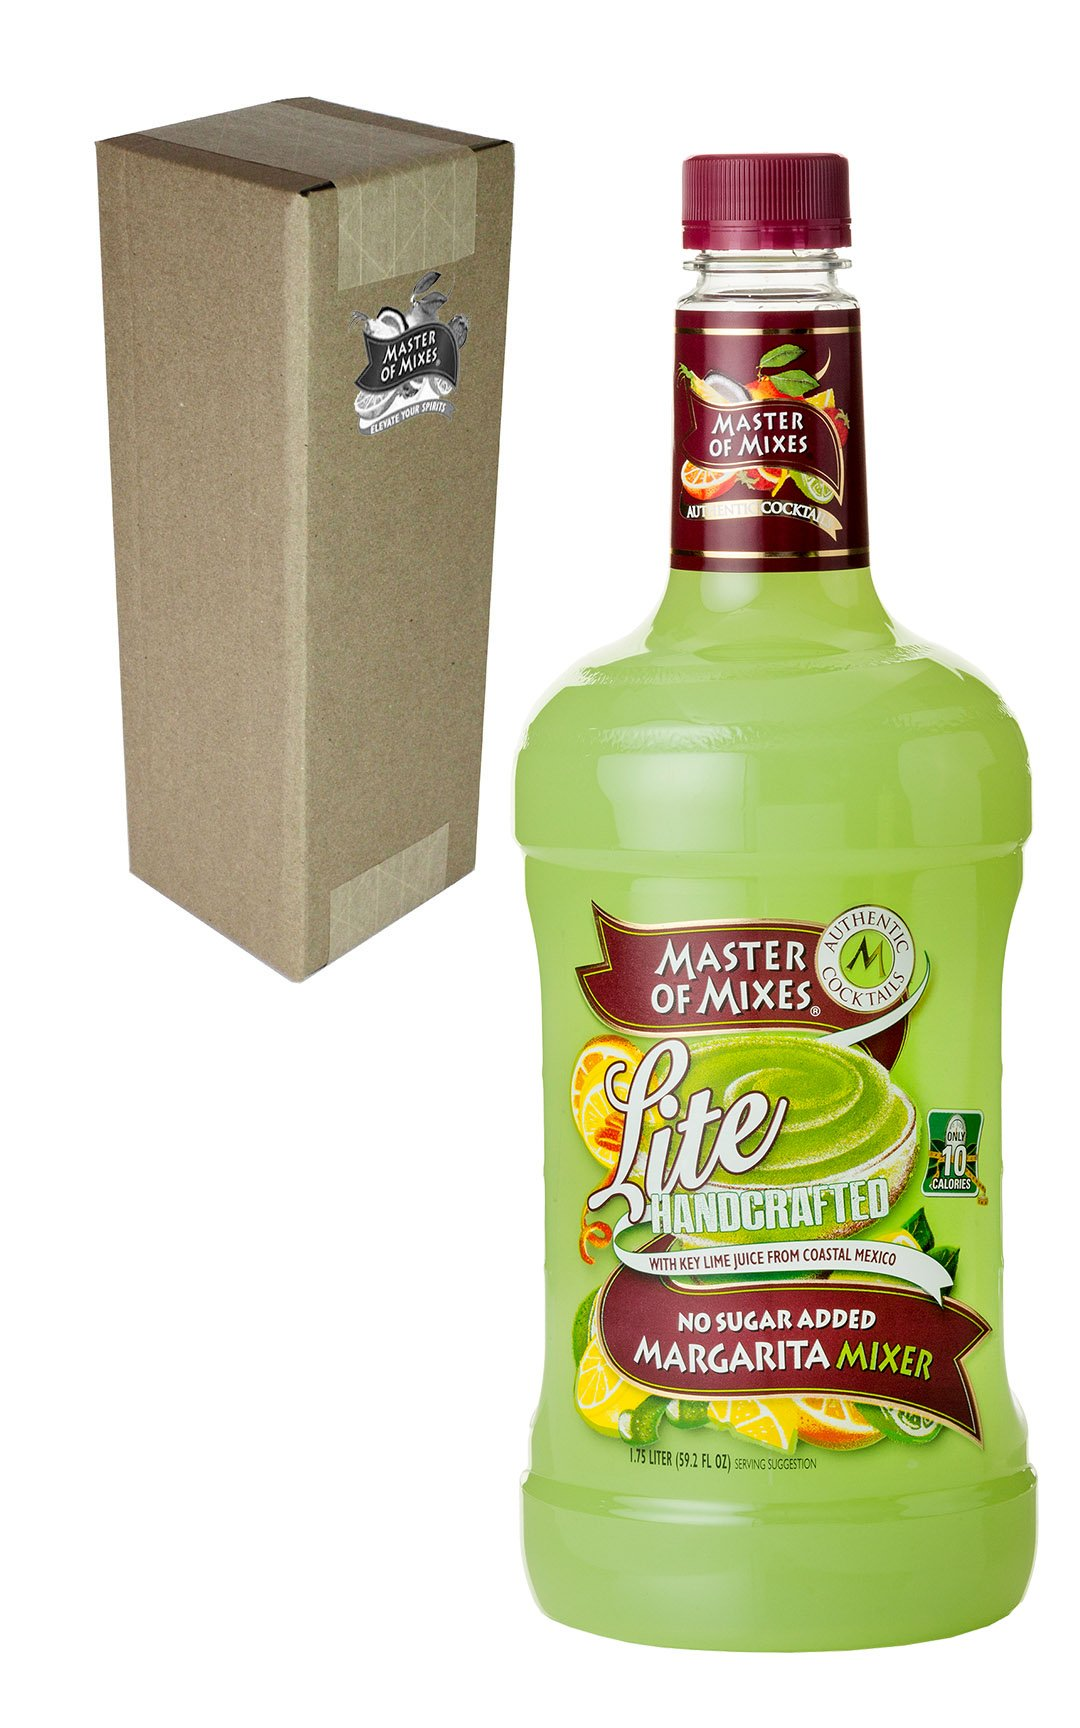 Master of Mixes Margarita Lite Drink Mix, Ready To Use, 1.75 Liter Bottle (59.2 Fl Oz), Individually Boxed